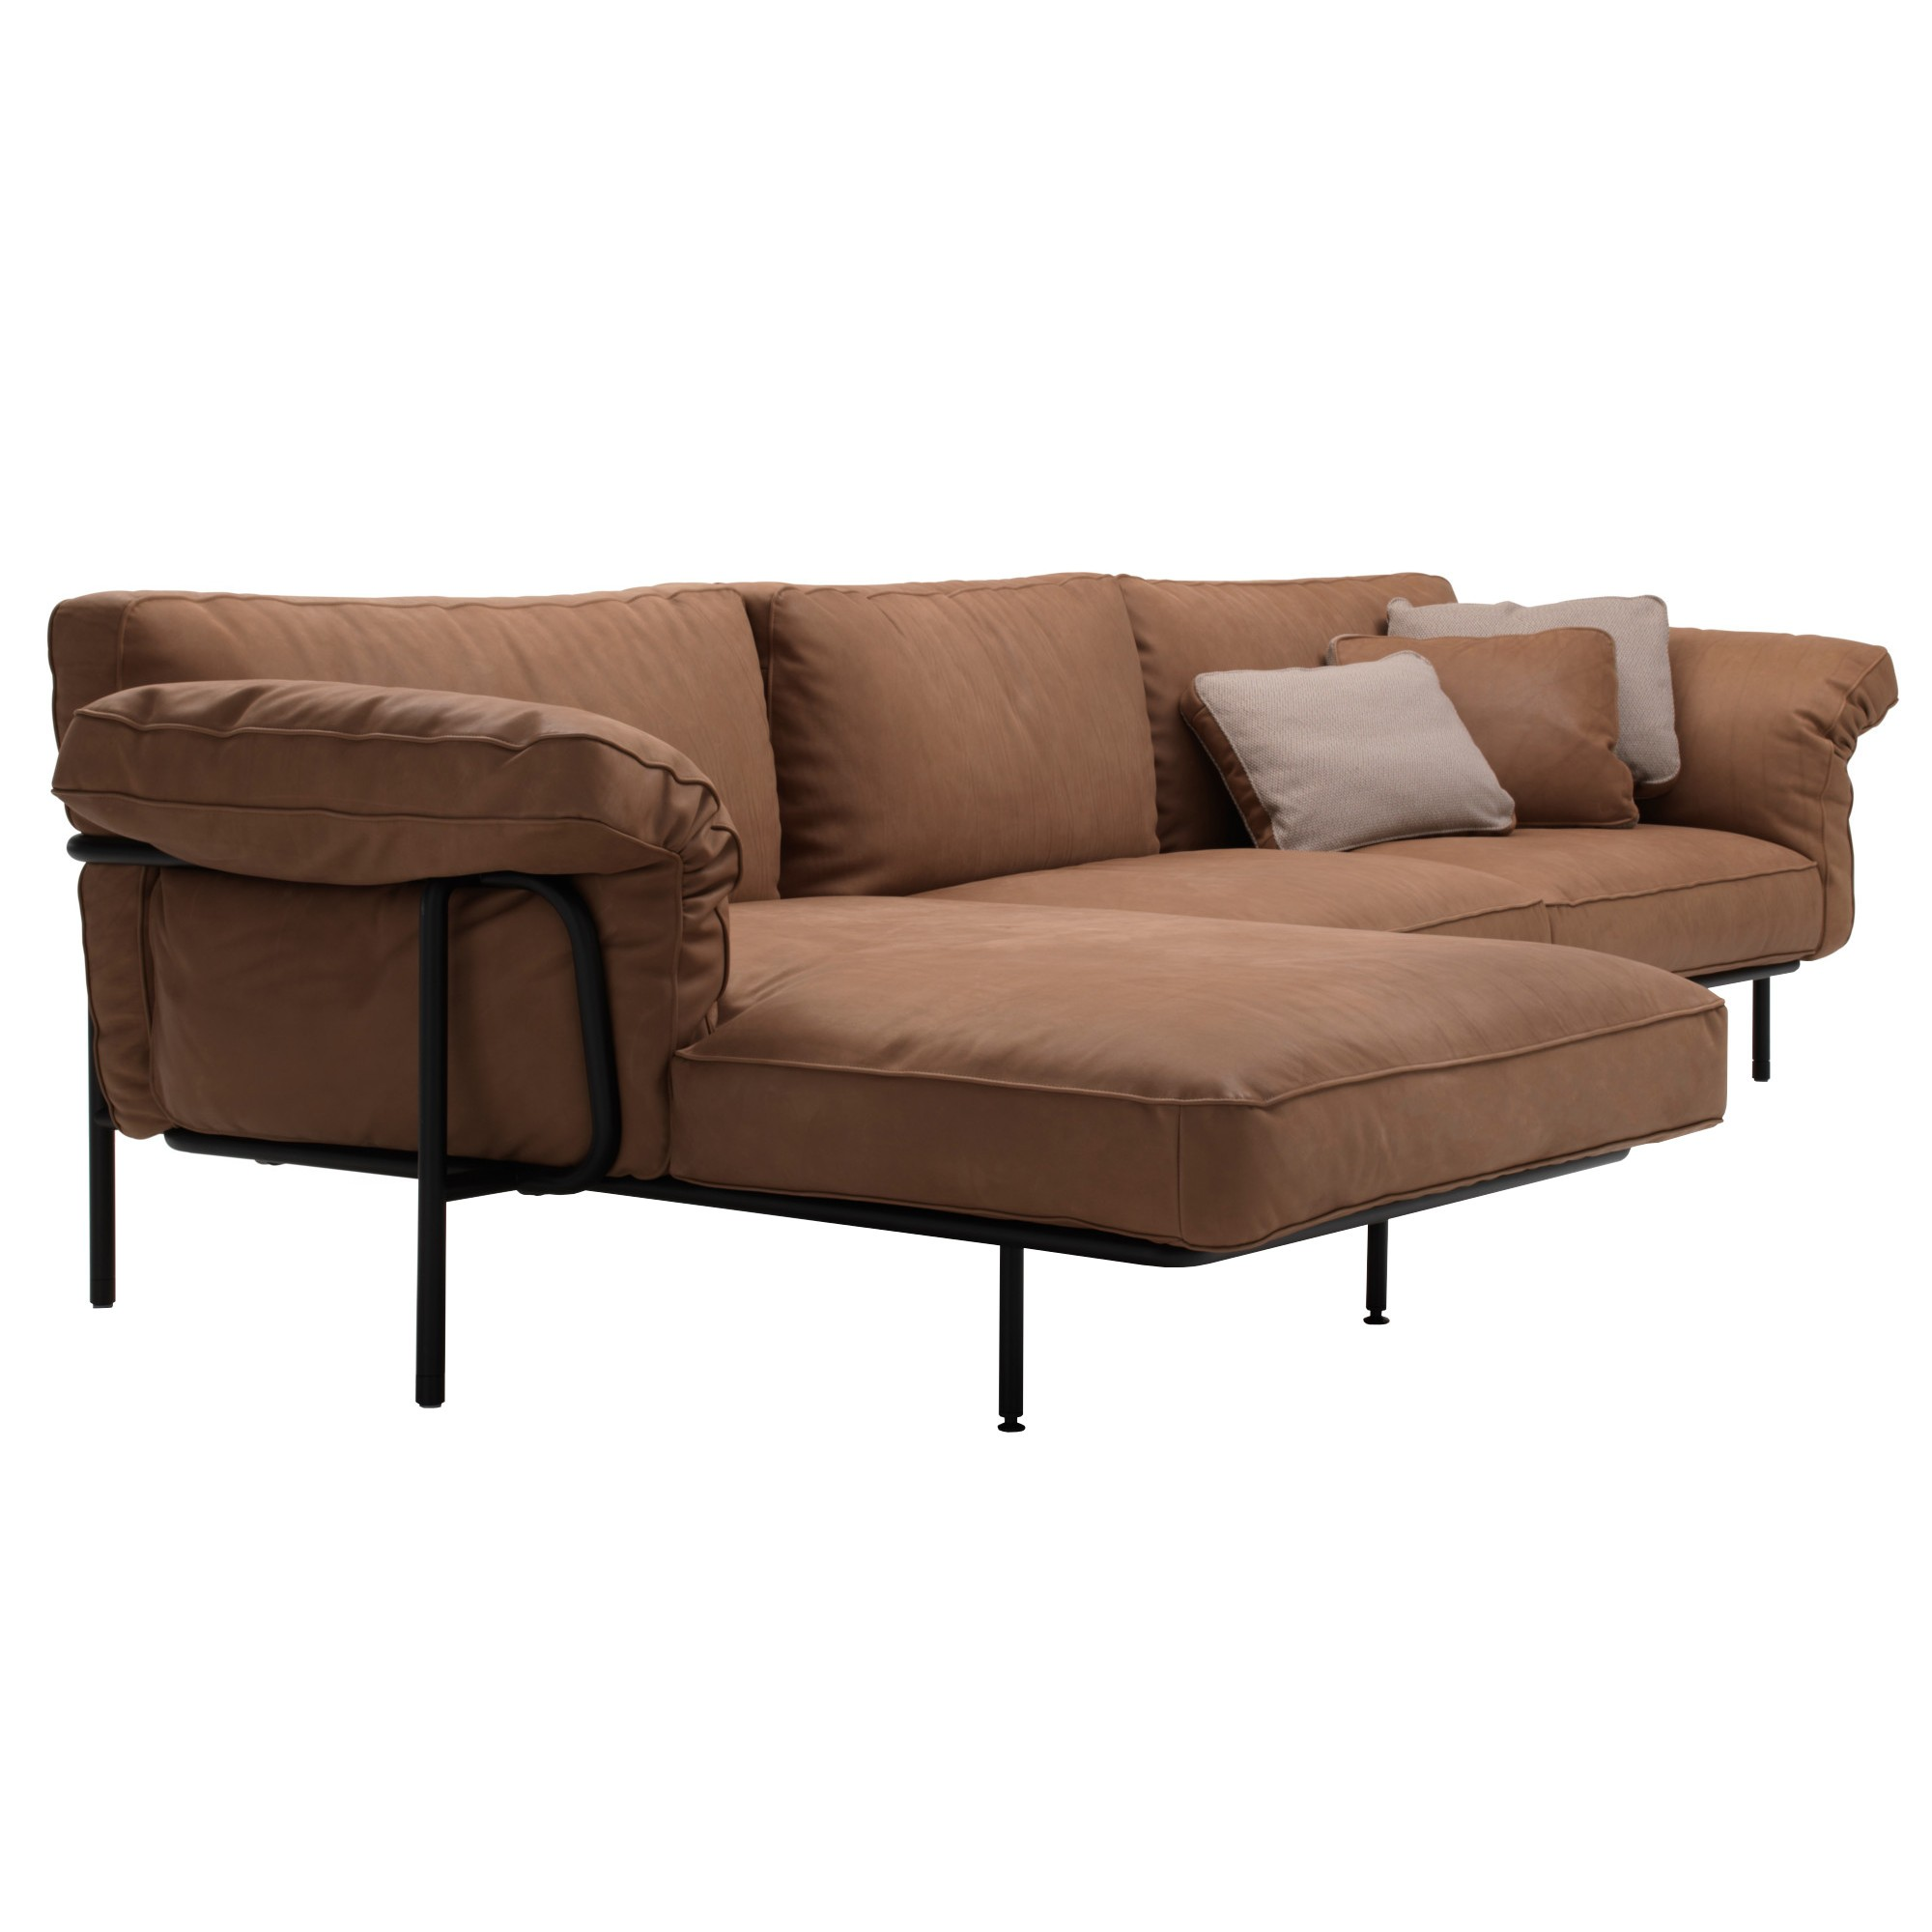 Divano Sceslong.Ds 610 Sofa With Chaise Longue